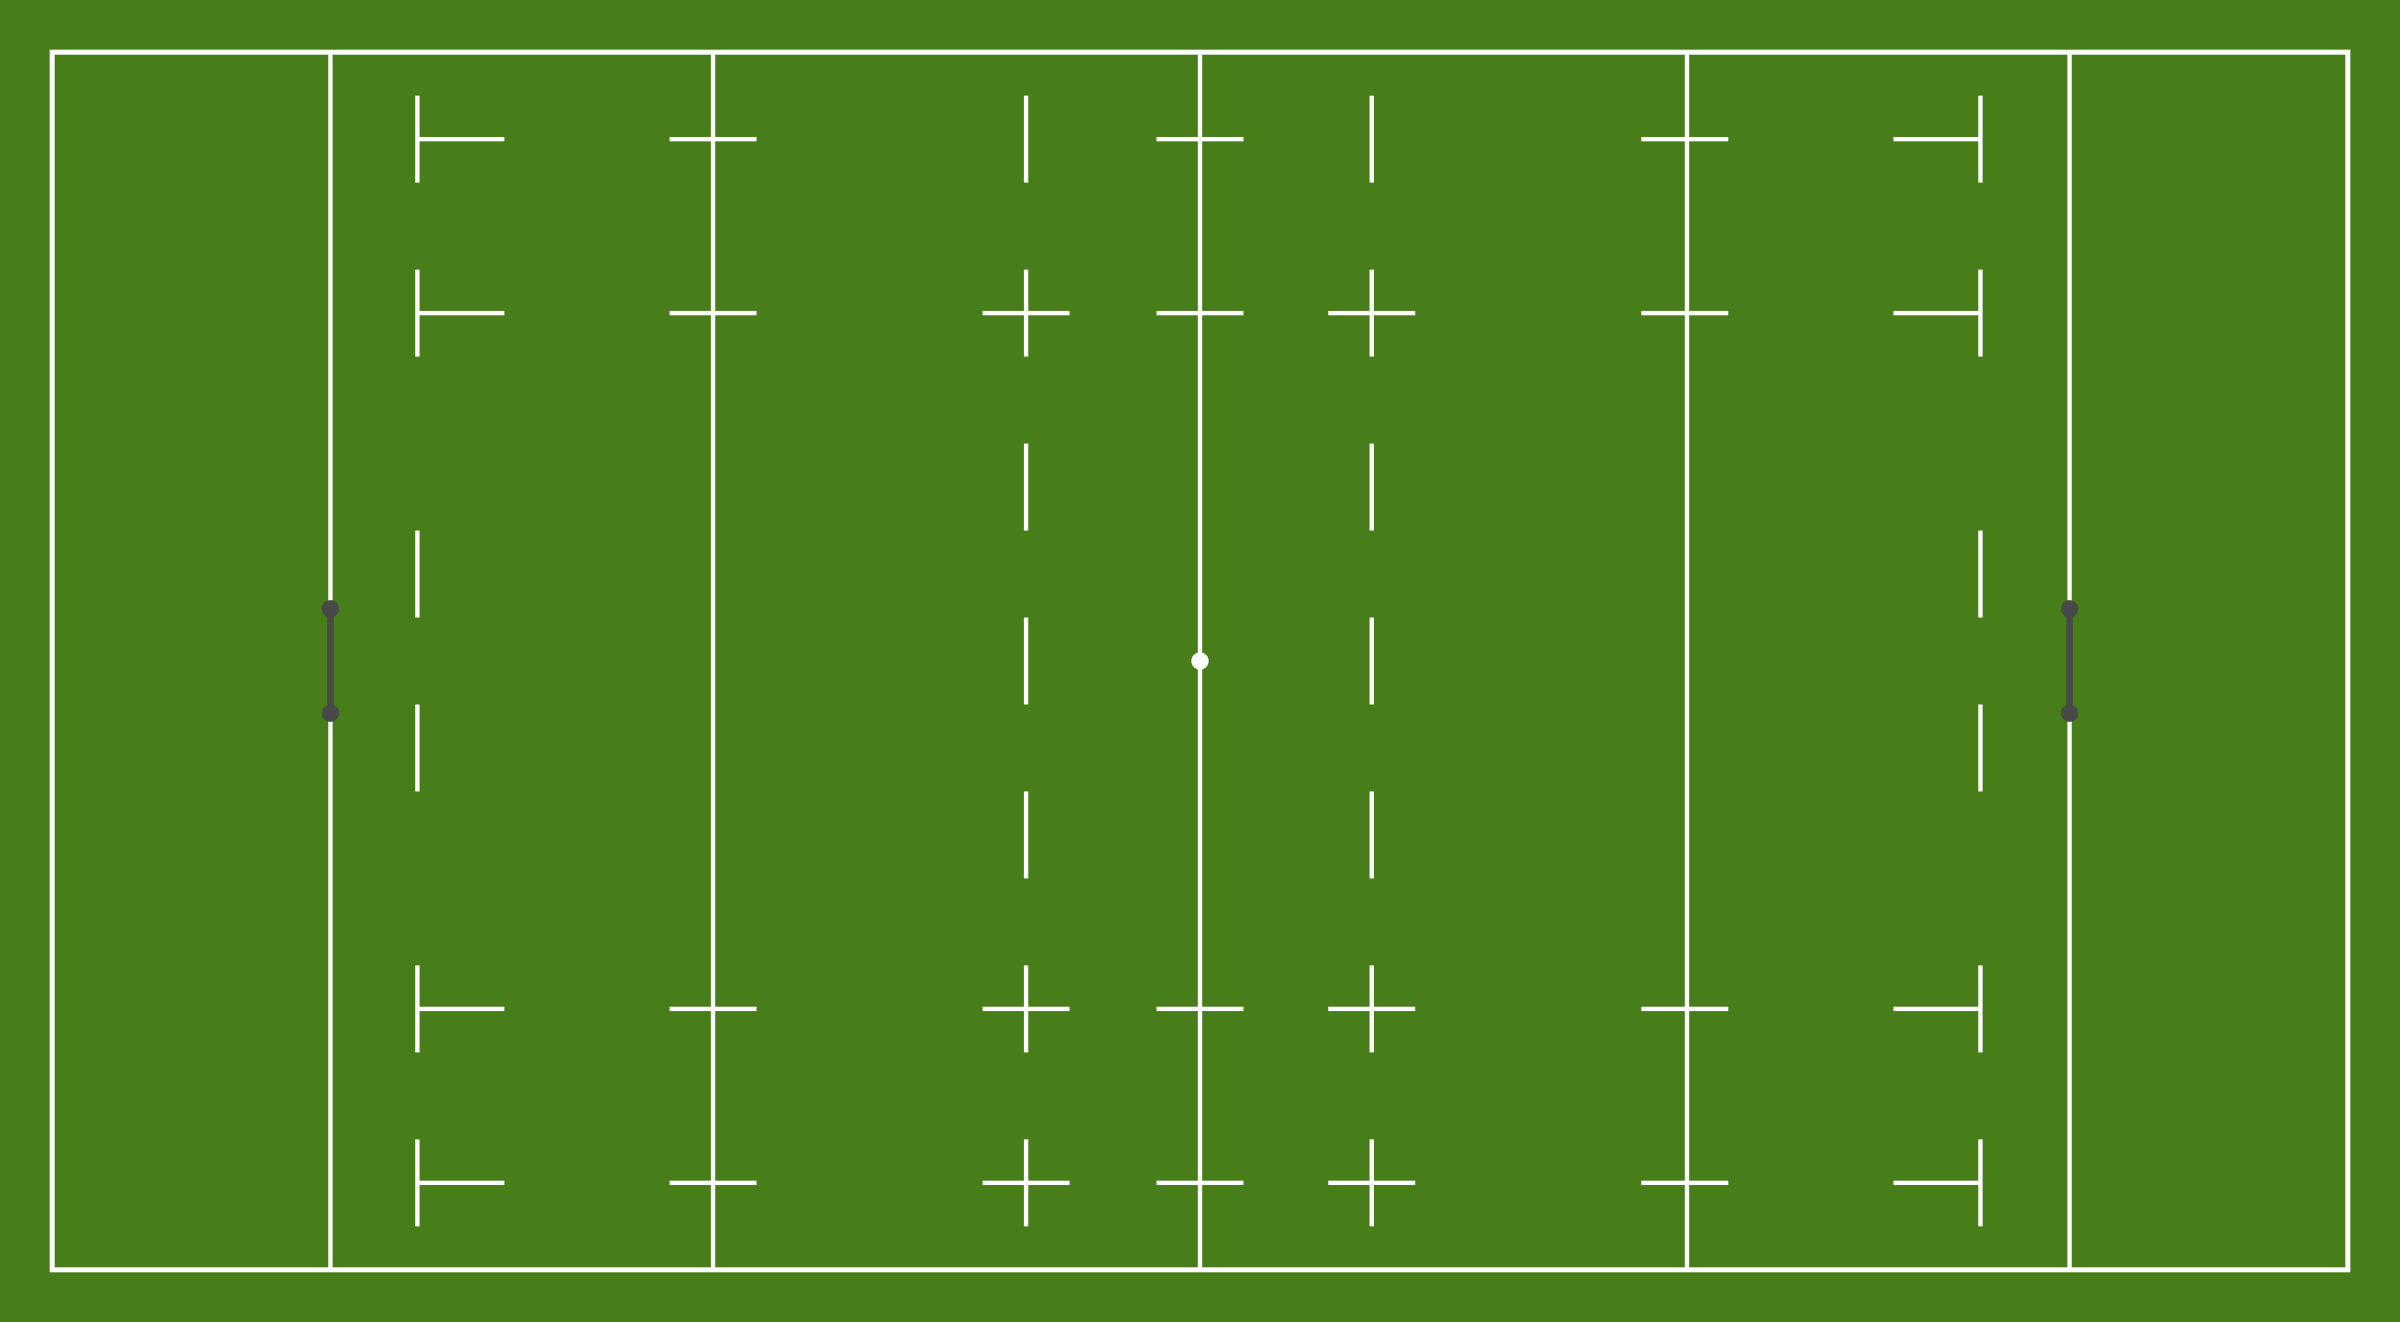 Rugby pitch drawing